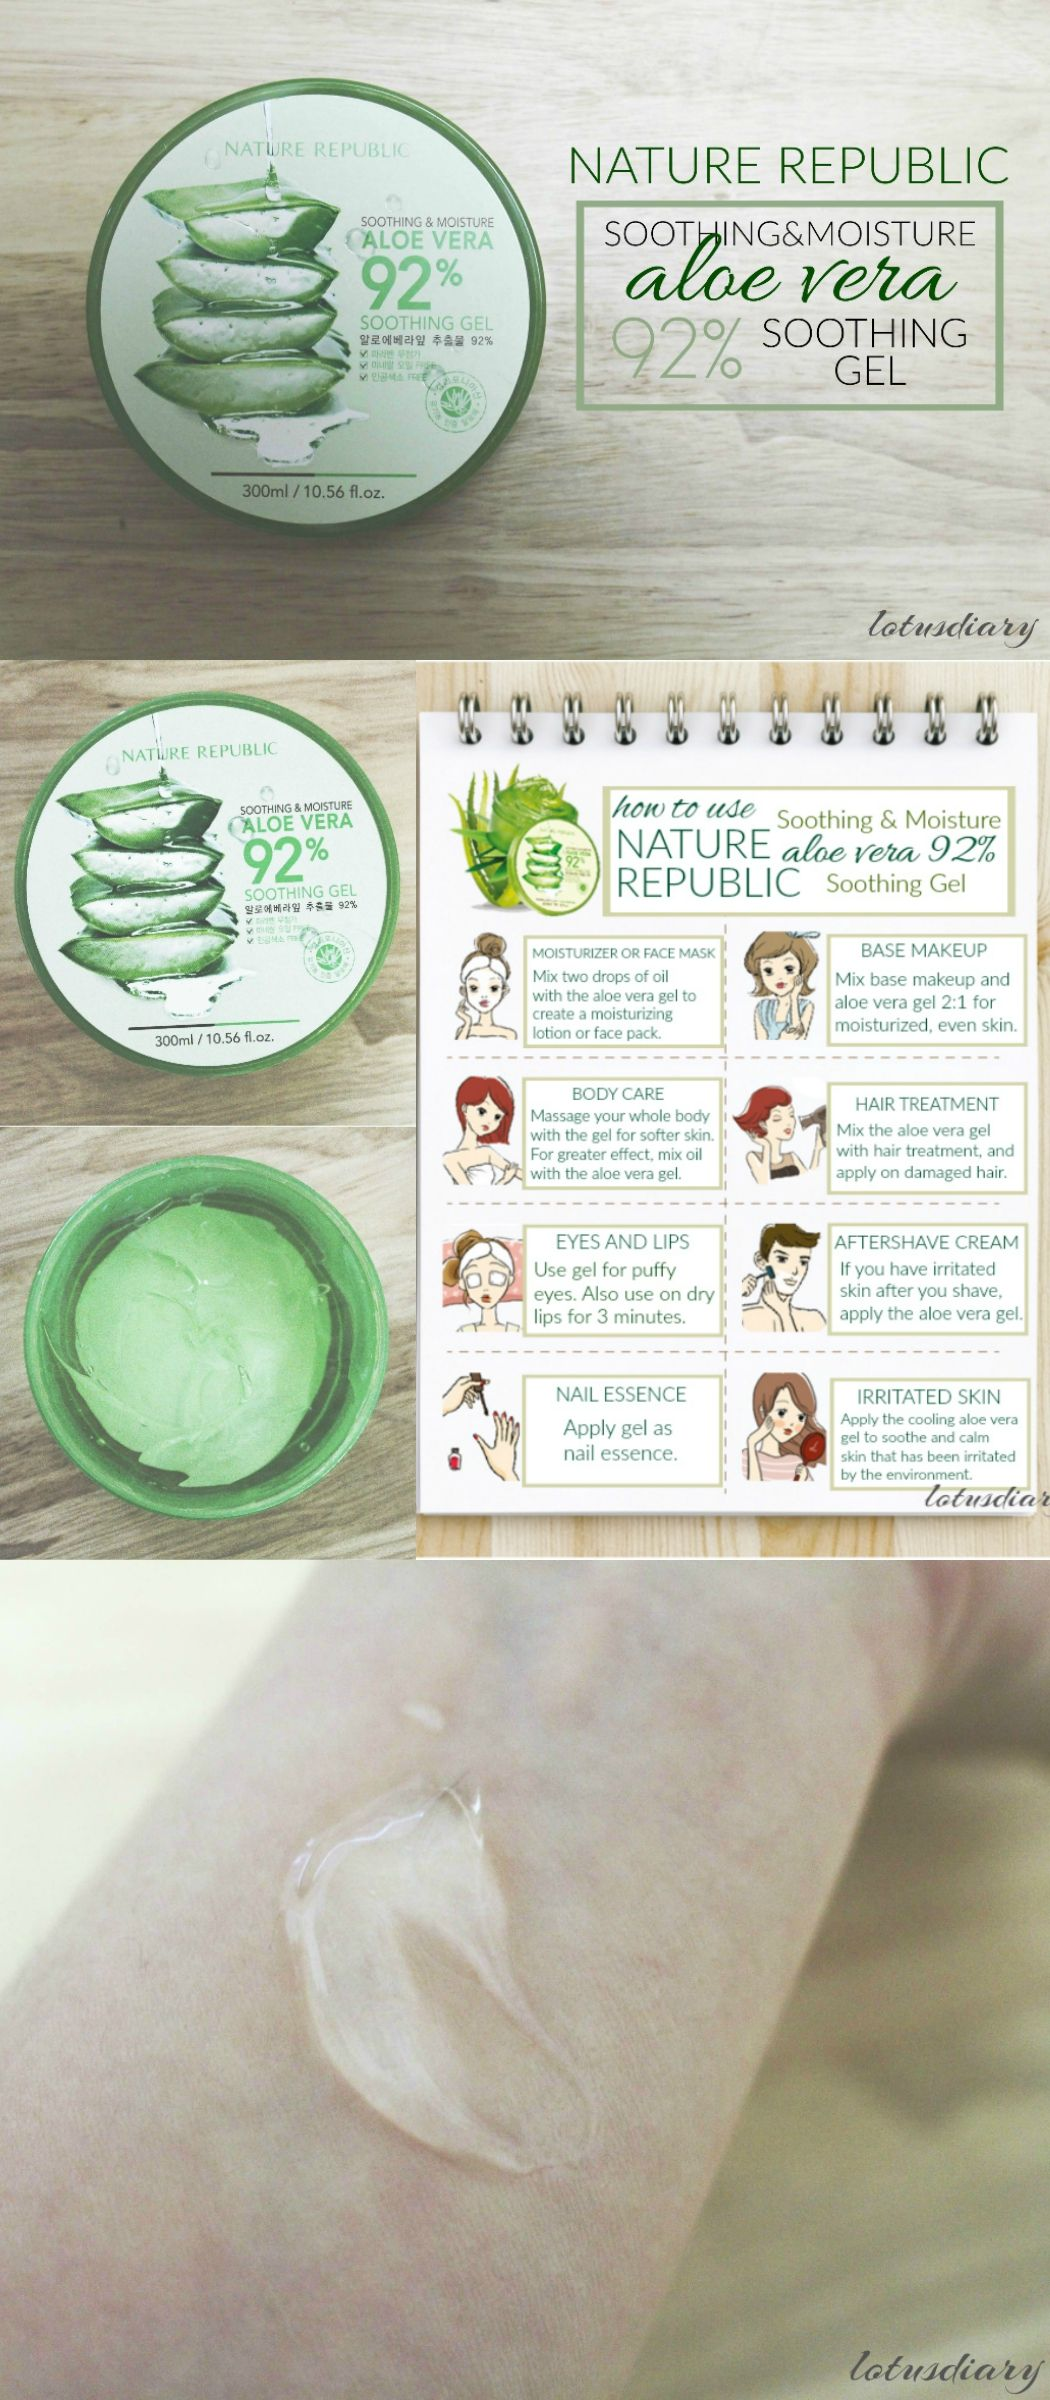 Review Nature Republic Soothing Moisture Aloe Vera 92 Soothing Gel Aloe Vera Skin Care Nature Republic Aloe Vera Skin Care Routine